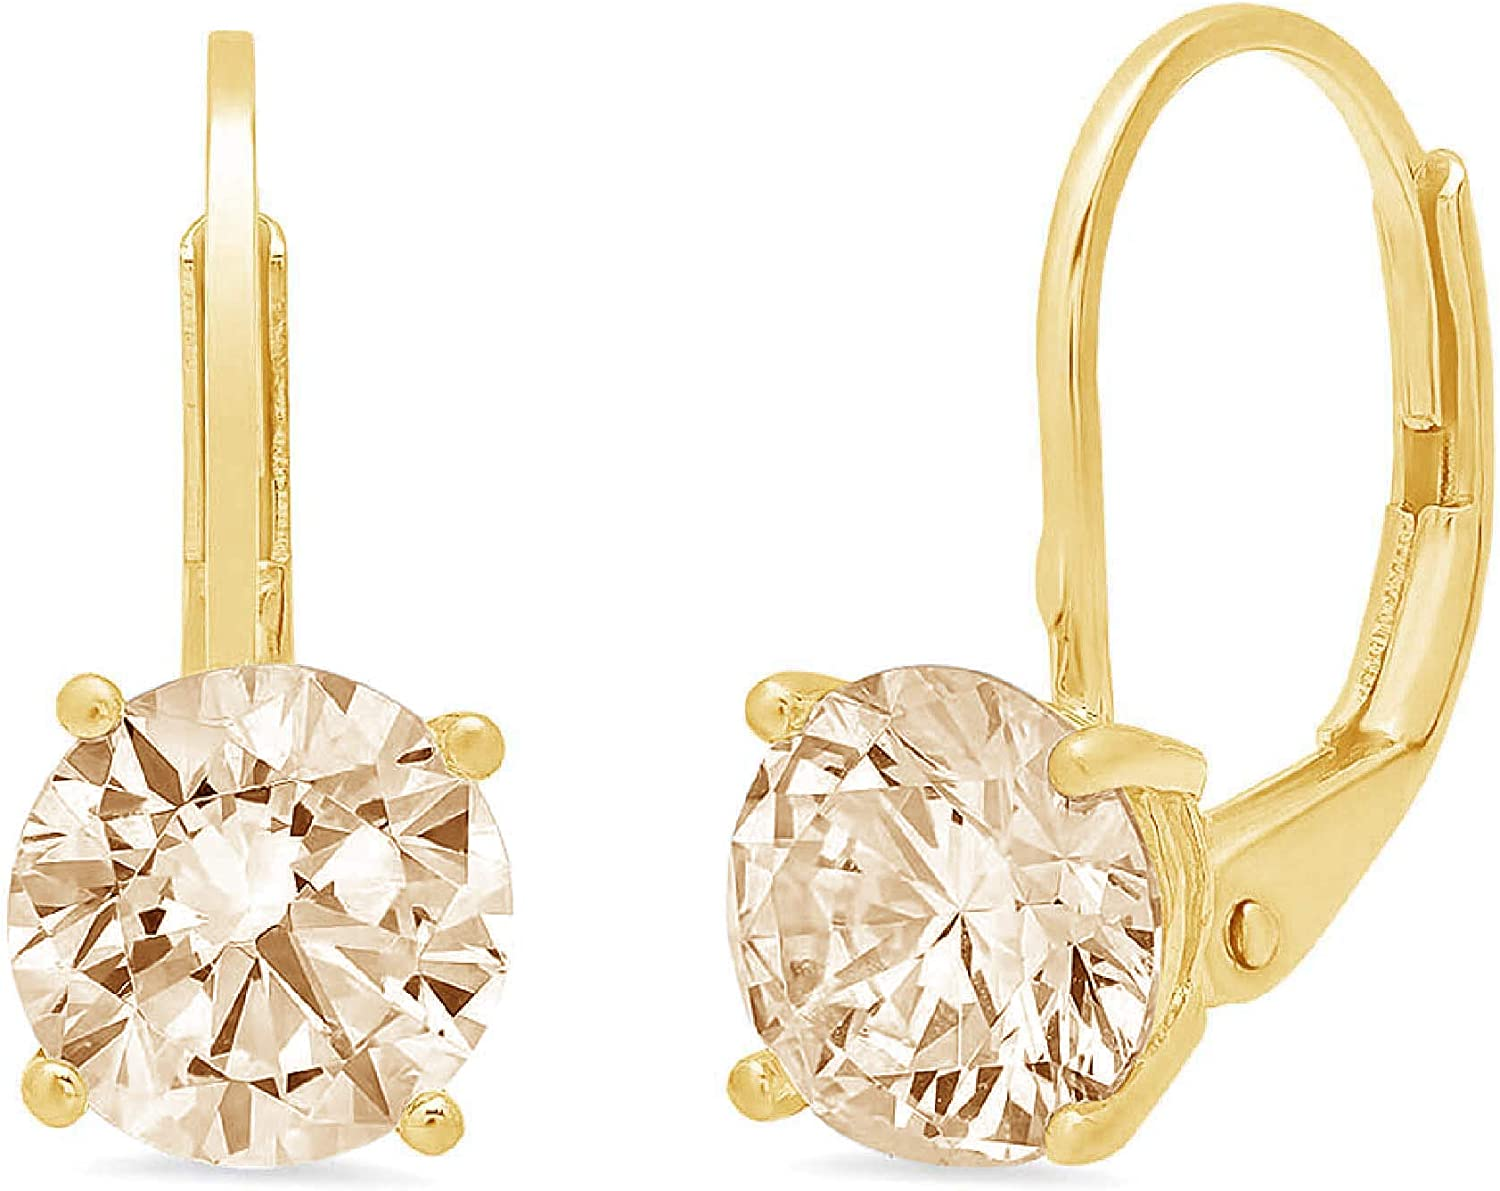 Clara Pucci 2.0 ct Brilliant Round Cut Solitaire VVS1 Flawless Natural Brown Morganite Gemstone Pair of Lever back Drop Dangle Earrings Solid 18K Yellow Gold